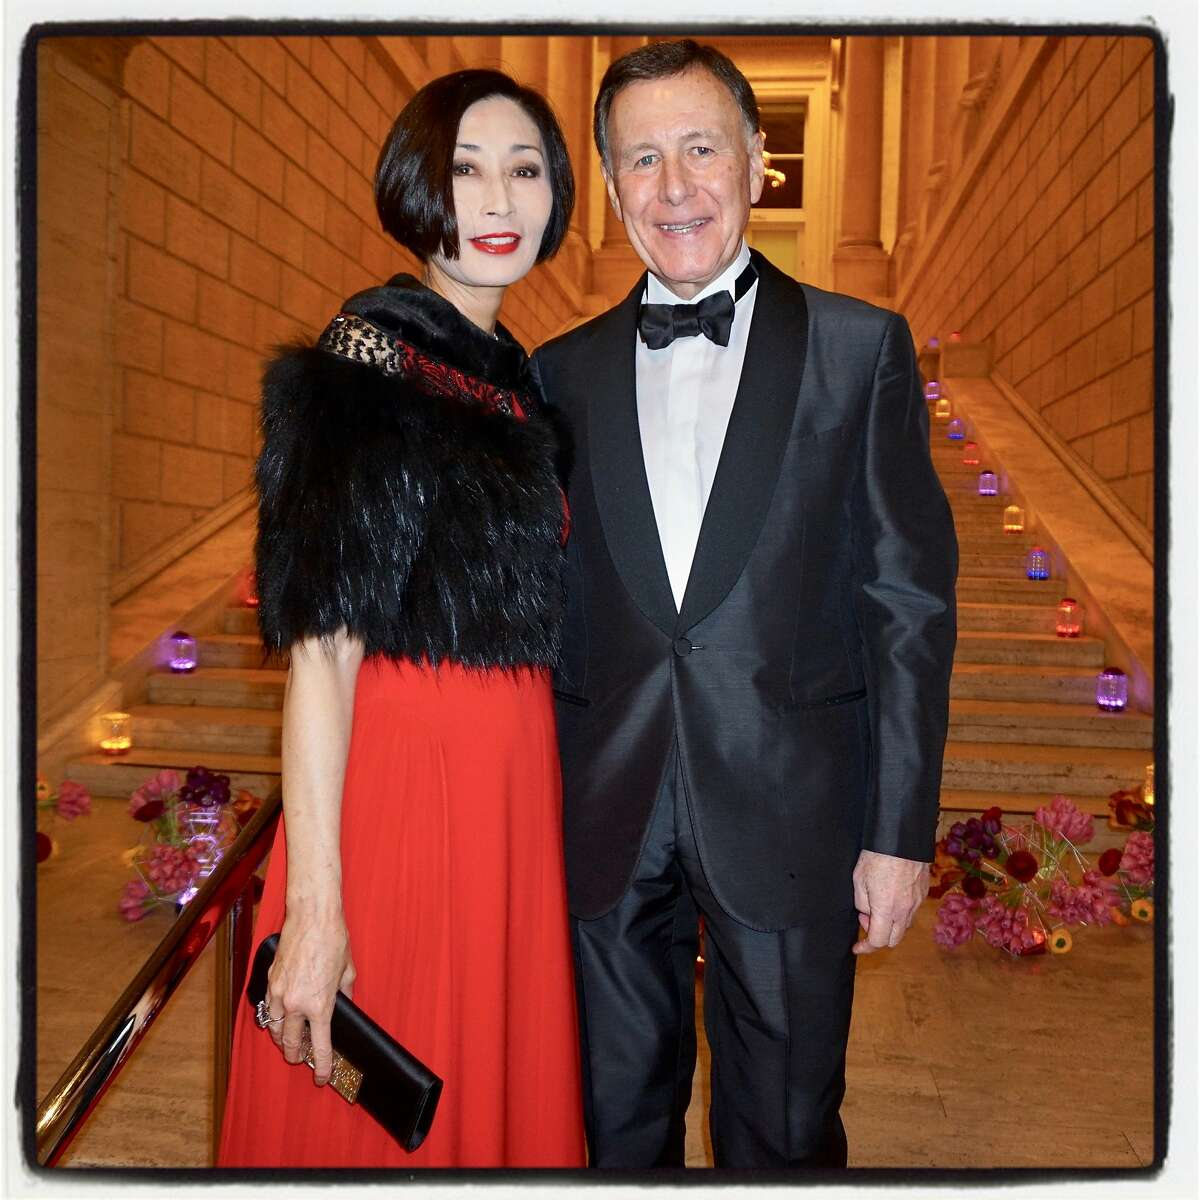 Yurie and Carl Pascarella at the Asian Art Museum gala. March 2, 2017.